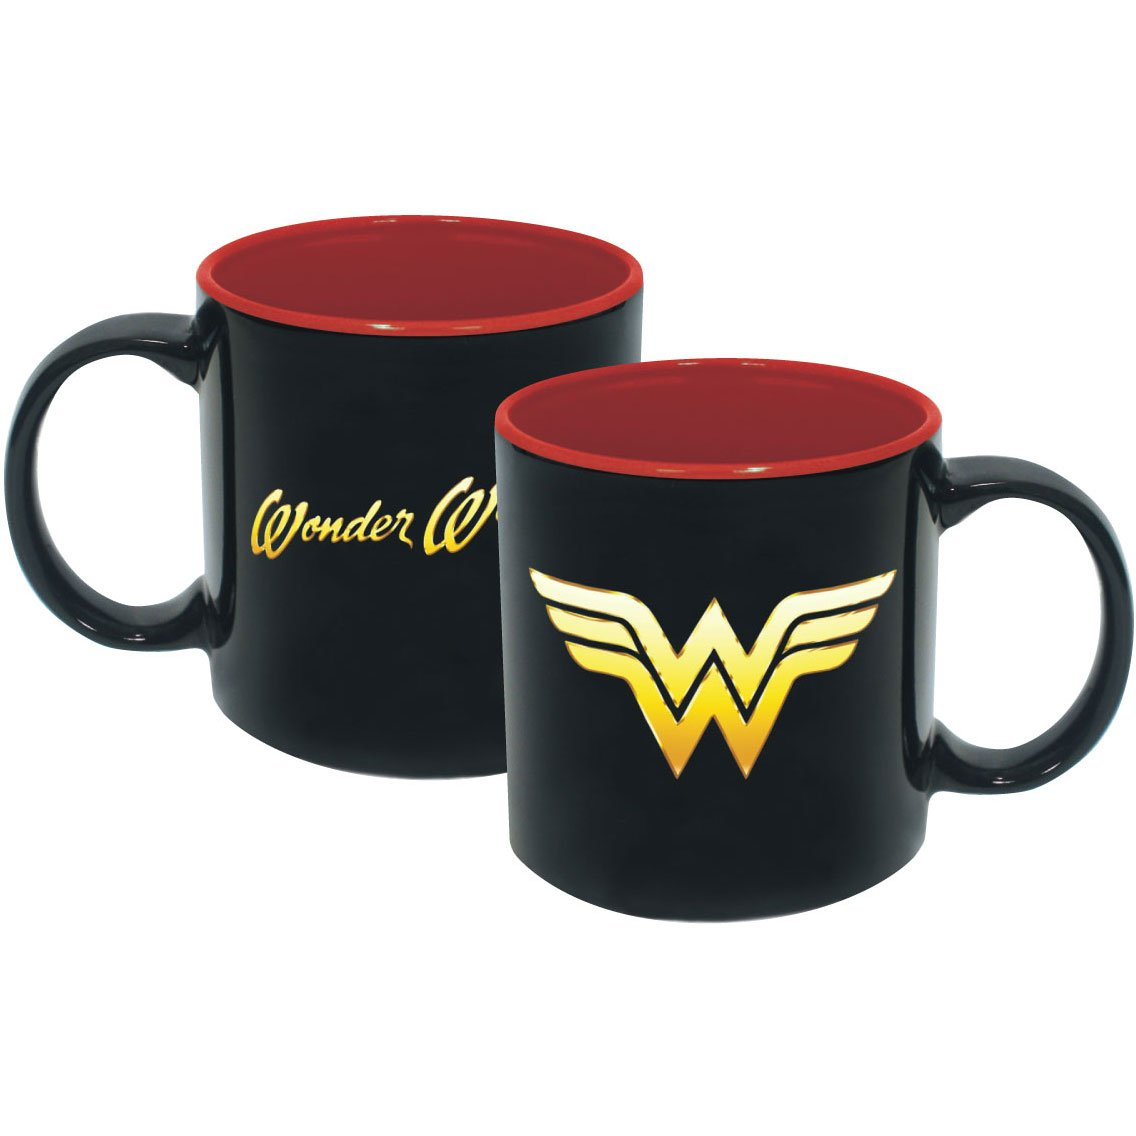 ICUP DC Wonder Woman Iridescent Insignia, 20 oz, Black & Red